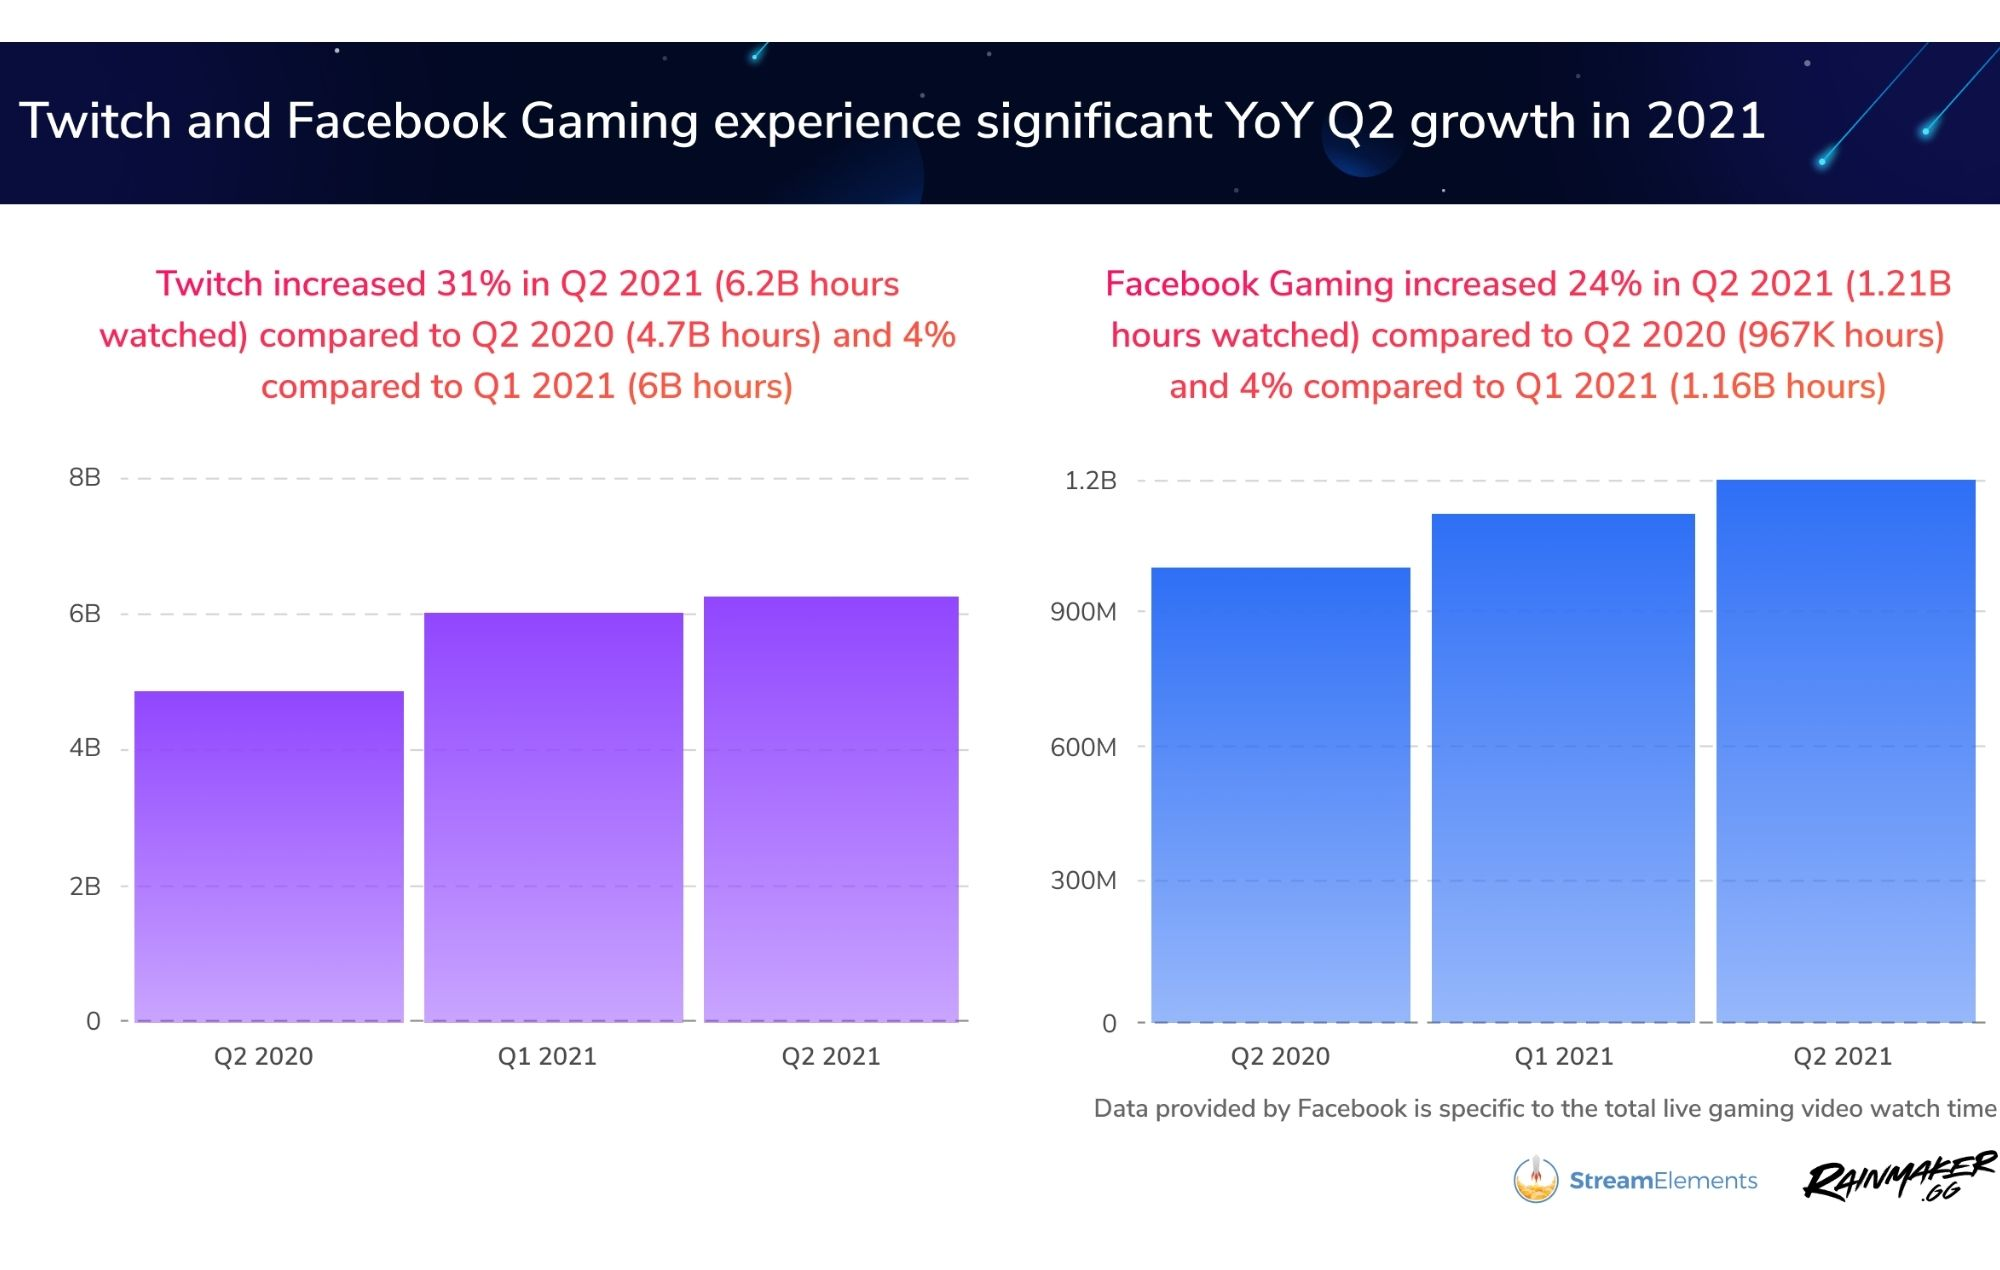 Twitch/Facebook gaming